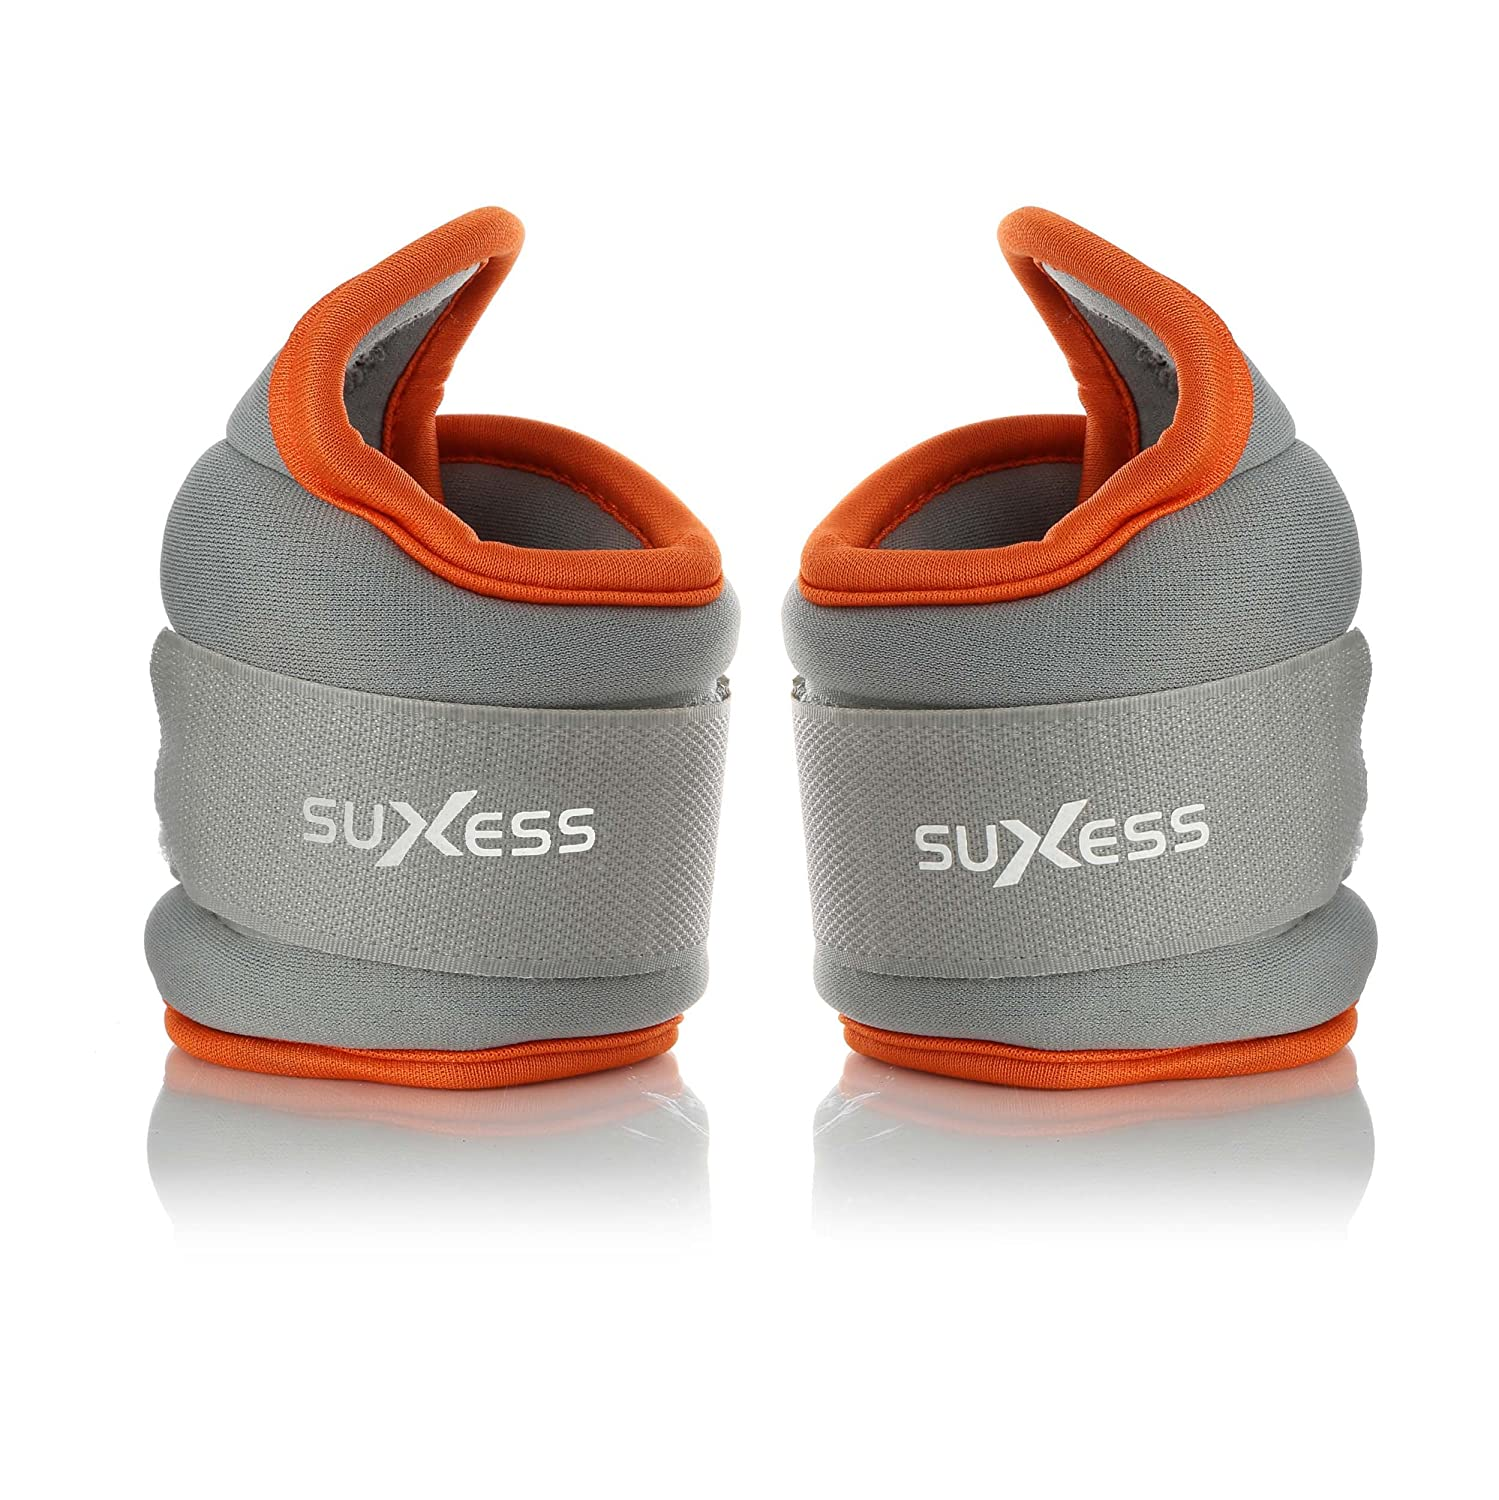 SuXess Fitness Gear Adjustable Padded Thumb-lock Wrist Weights   Comfortable, Wraps Naturally Around Your Wrist   Durable and Flexible for Any Type of Workout   1lb or 2lb, Anti Sweat Materials Anti Sweat Materials (1)